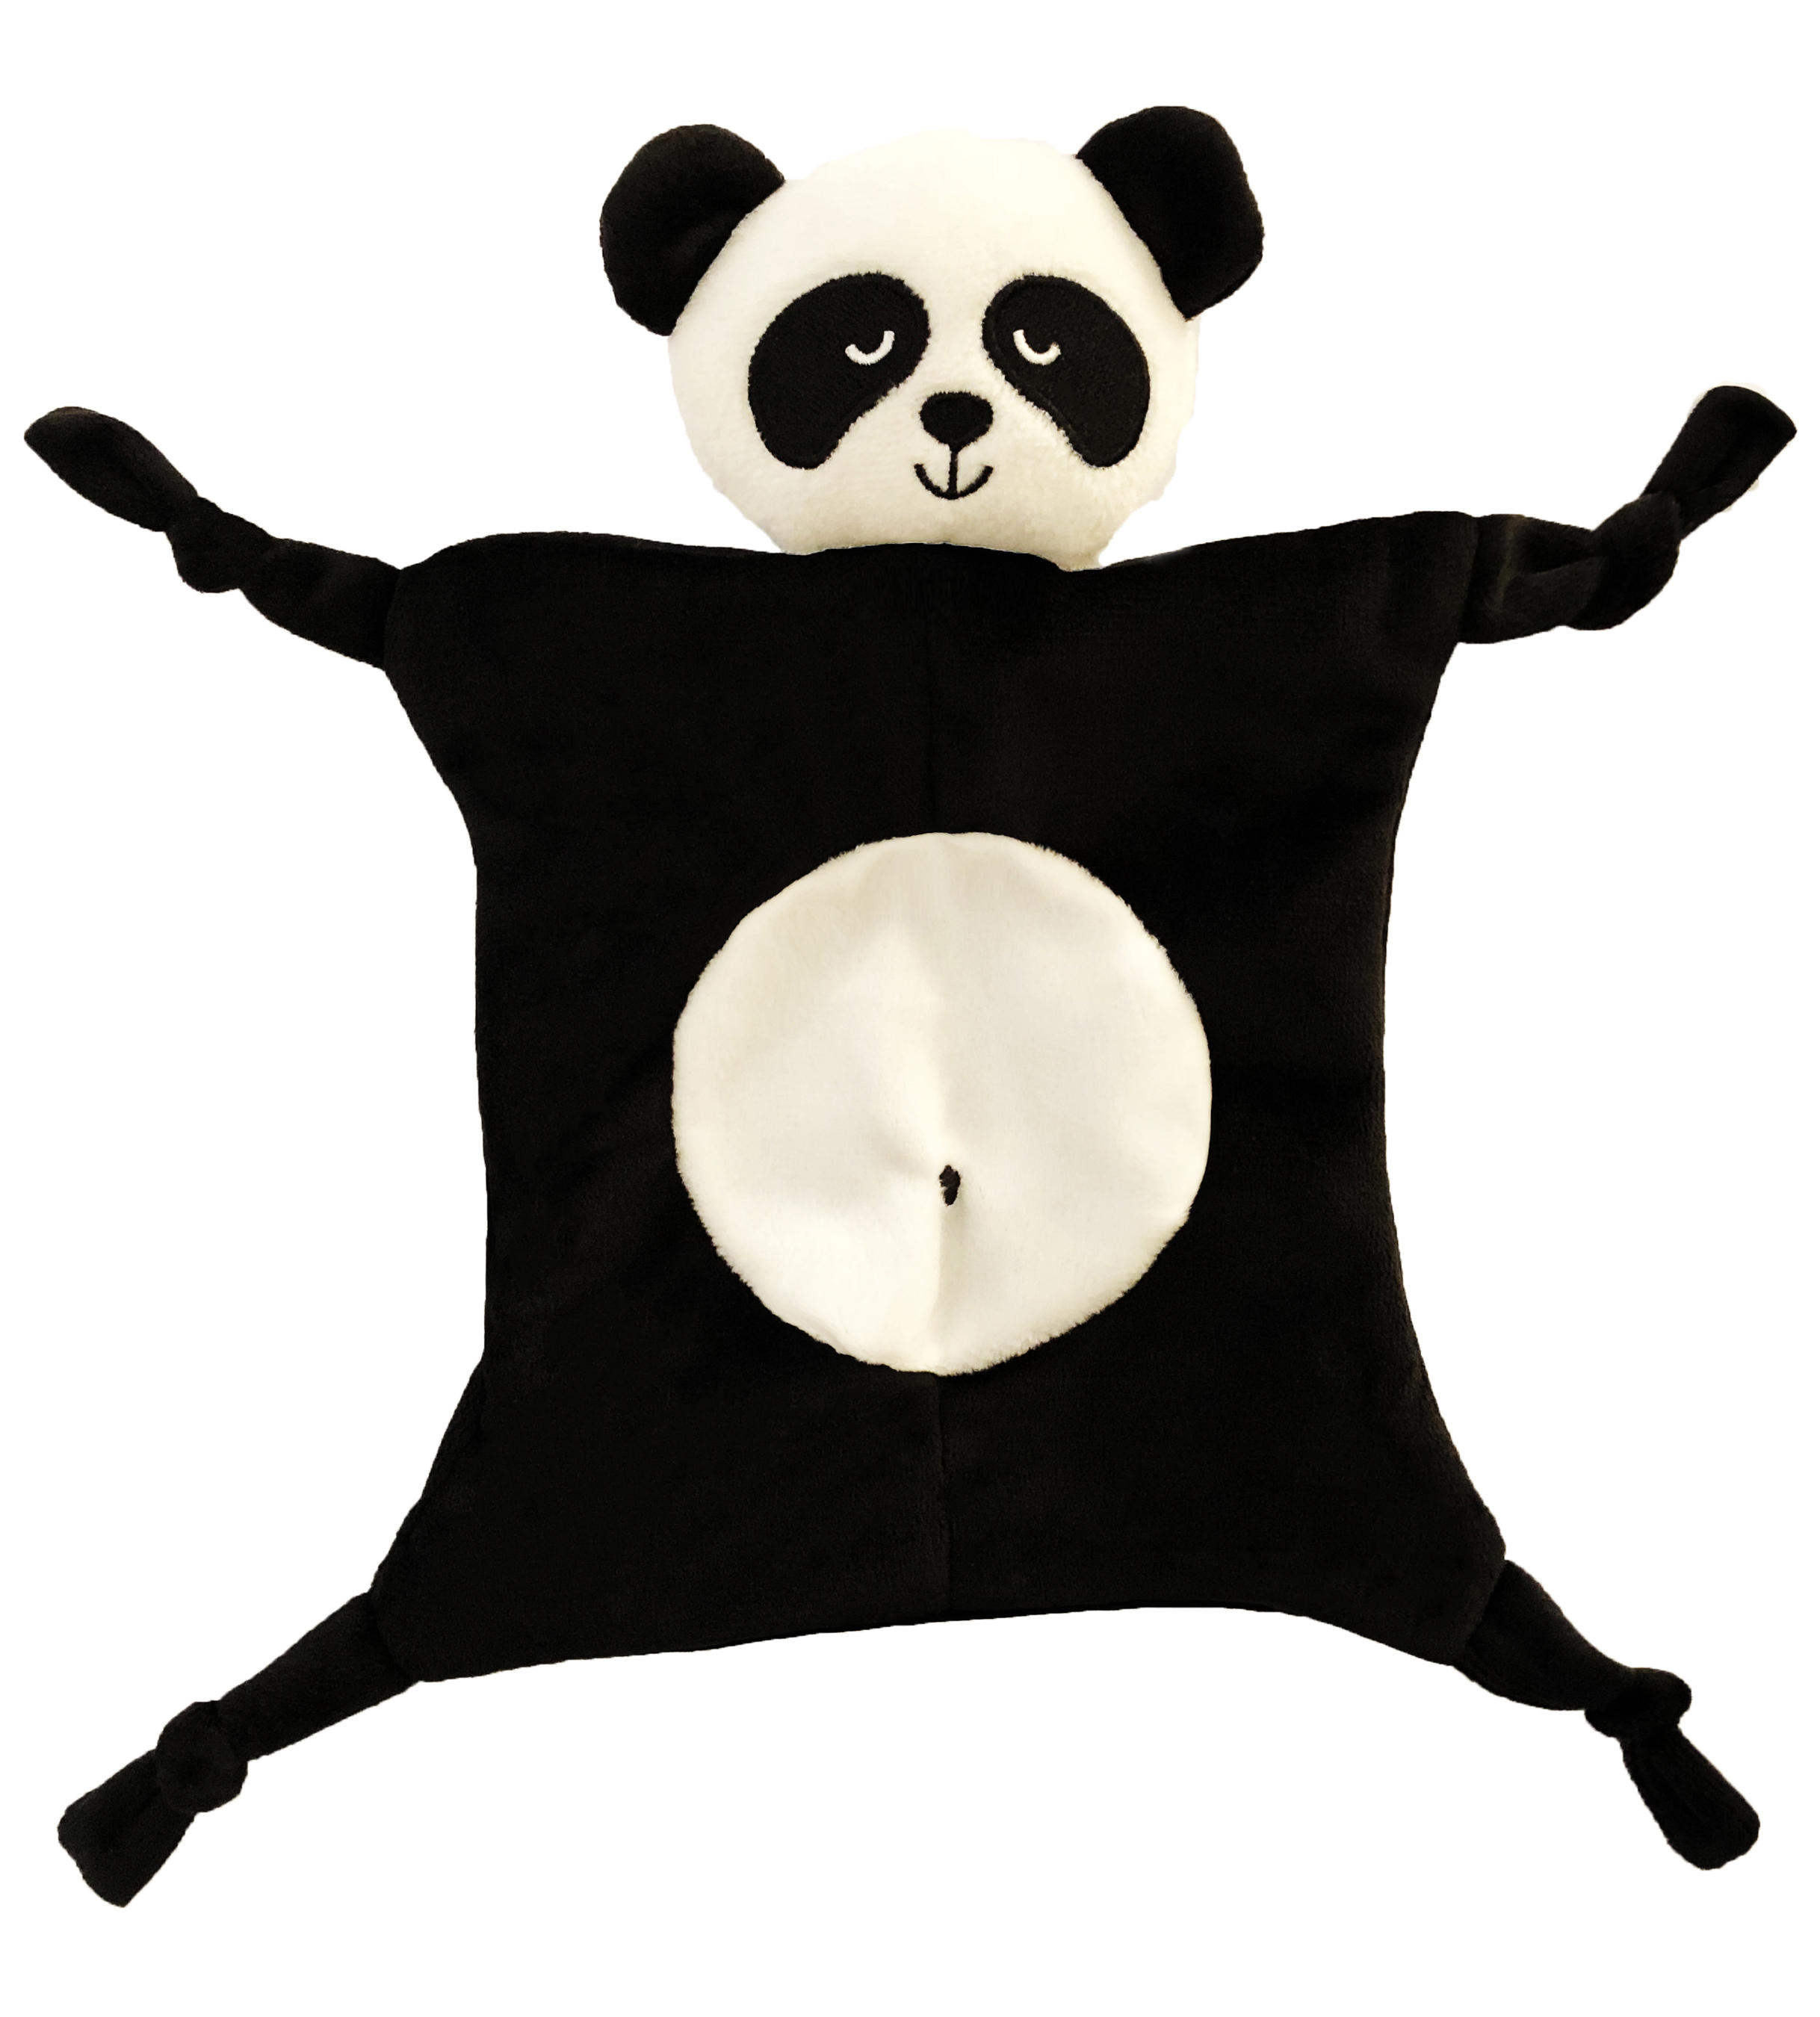 Snuggle Susan Panda Bean Bag Blanket